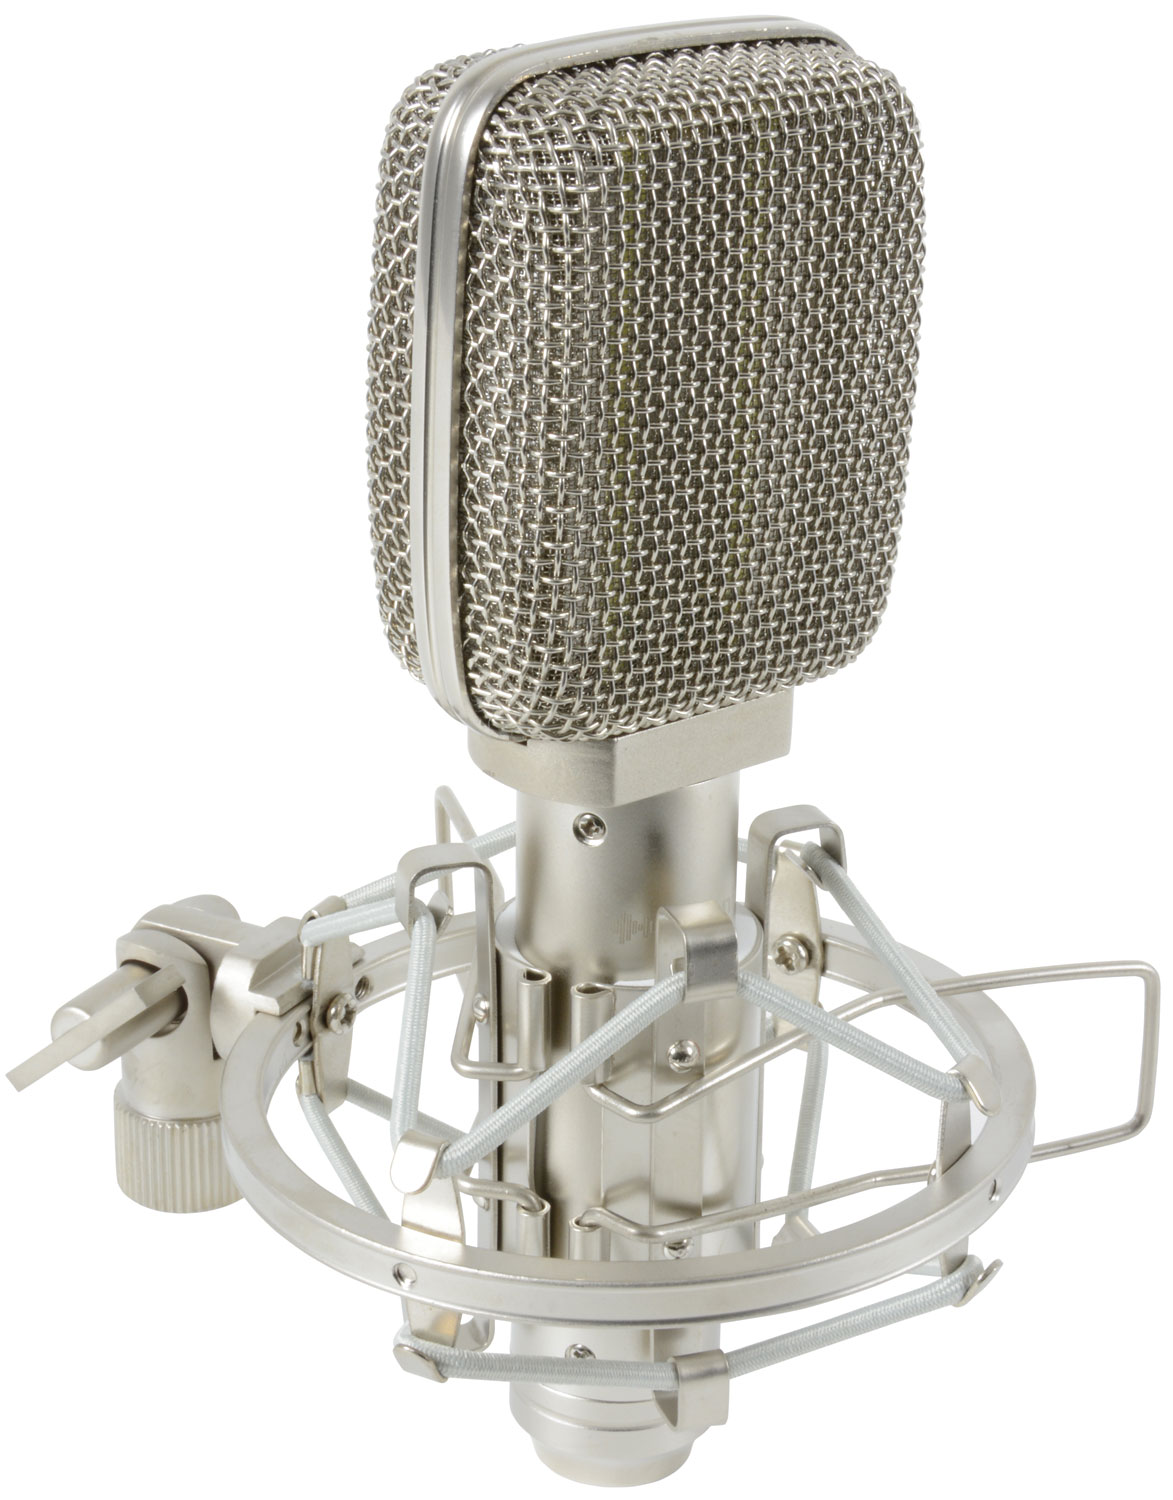 citronic RM06 ribbon microphone